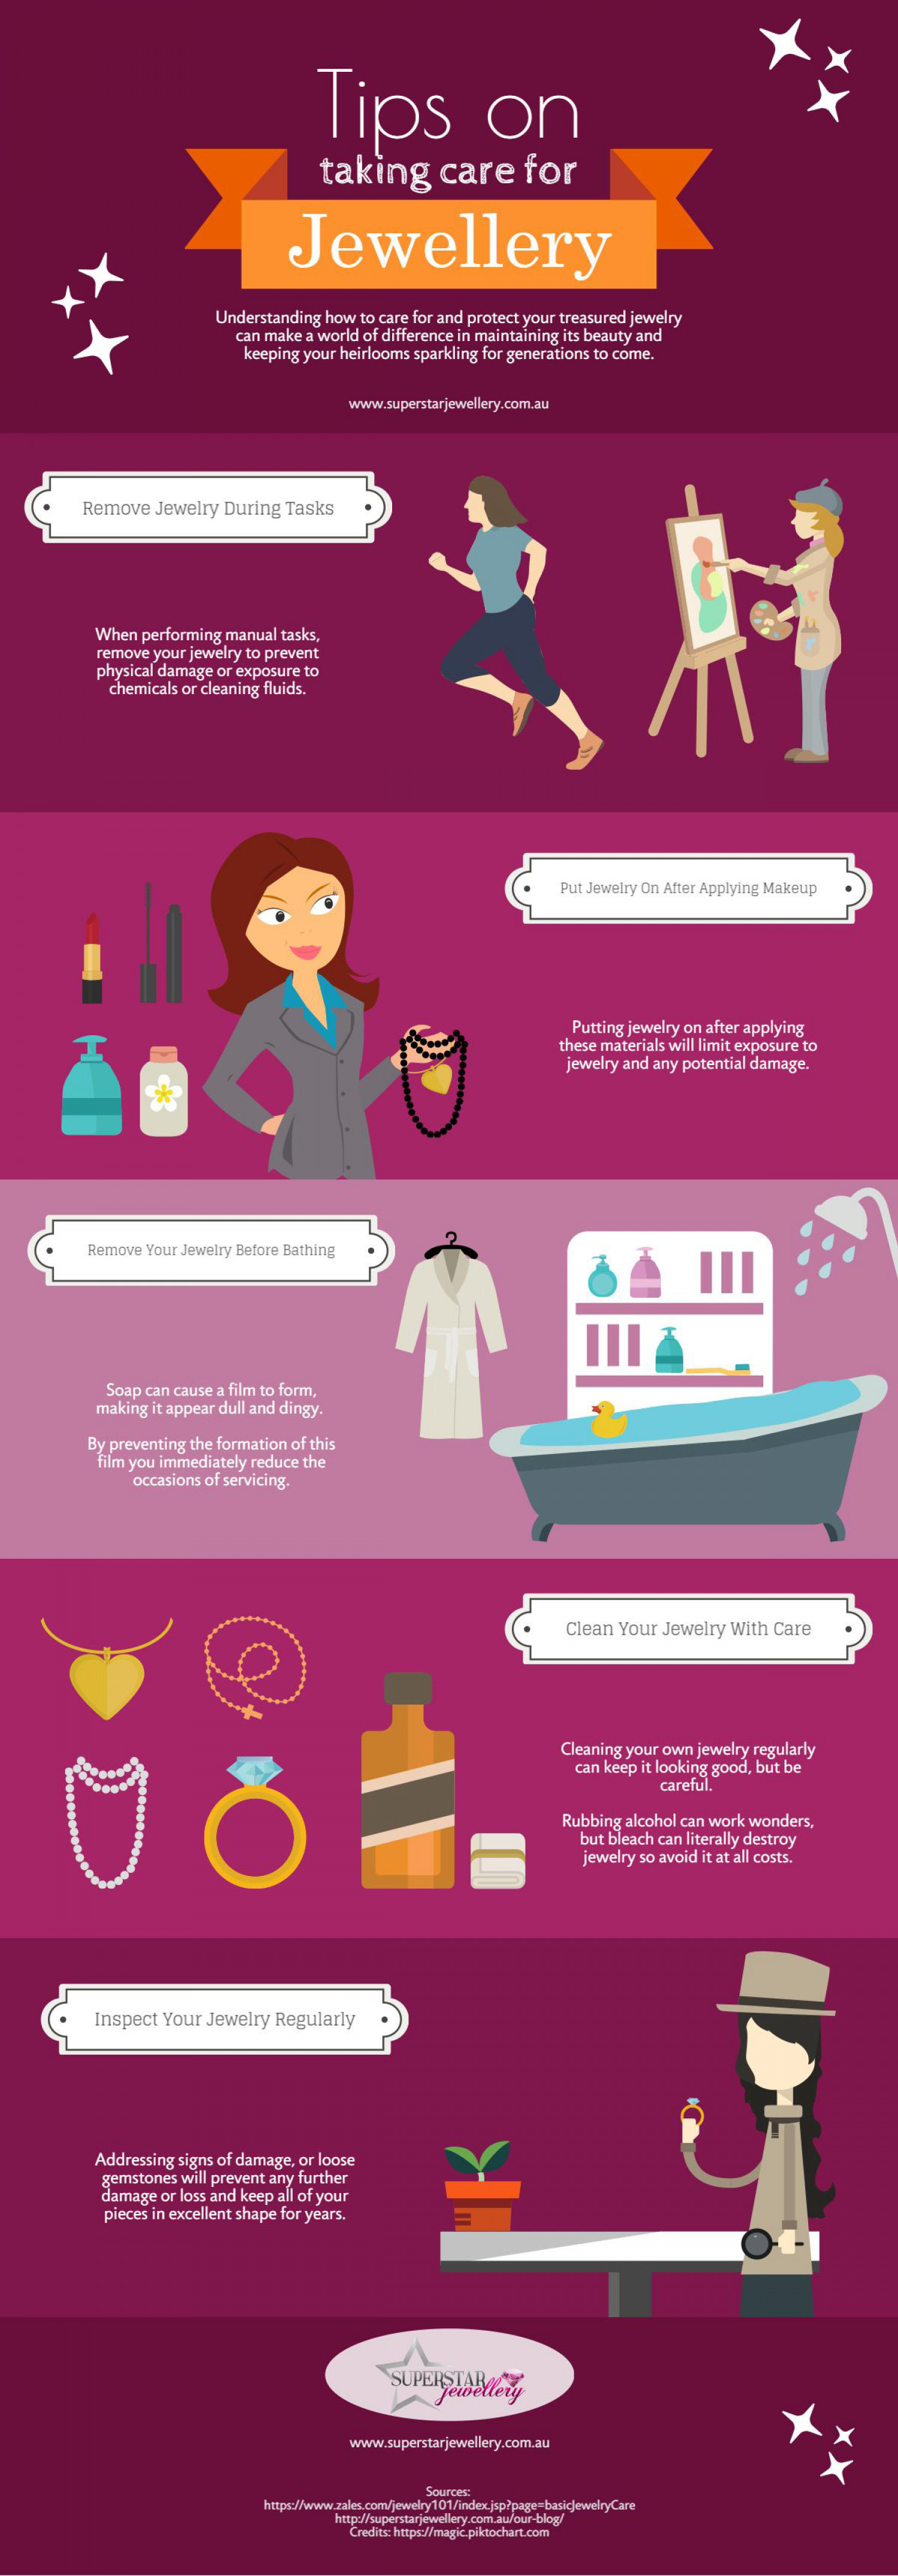 Tips on Taking Care for Jewellery Infographic